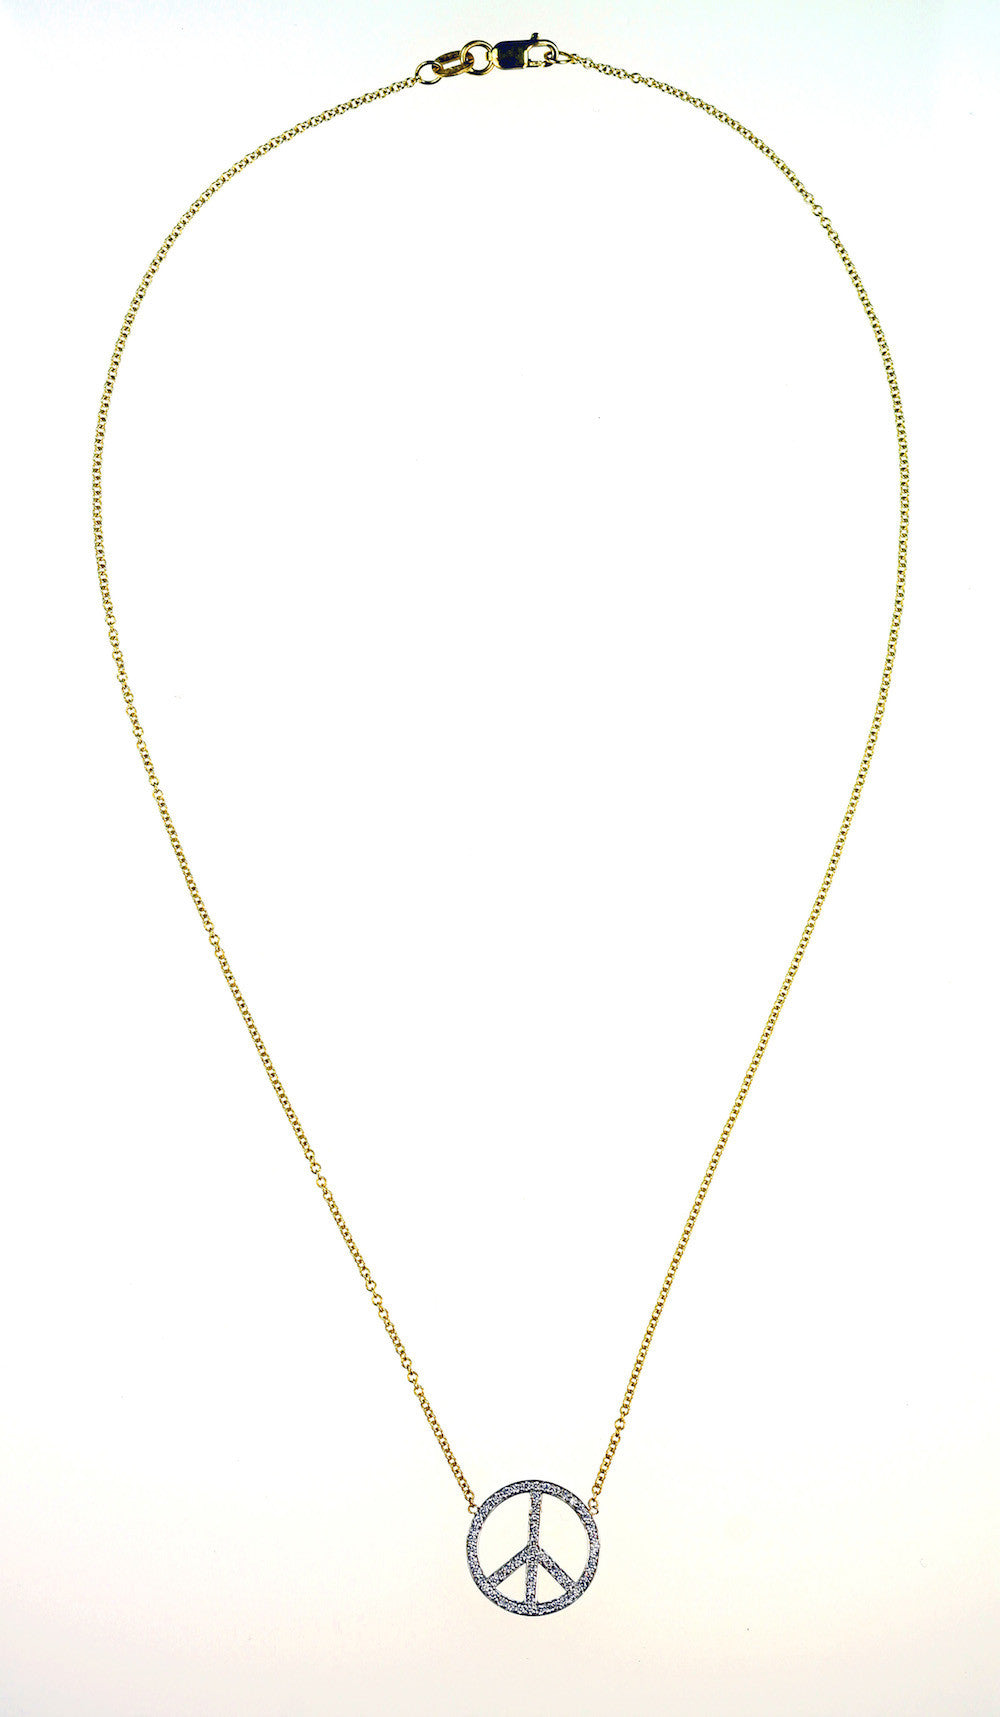 Janet Deleuse Designer Peace Sign Diamond Necklace, SOLD